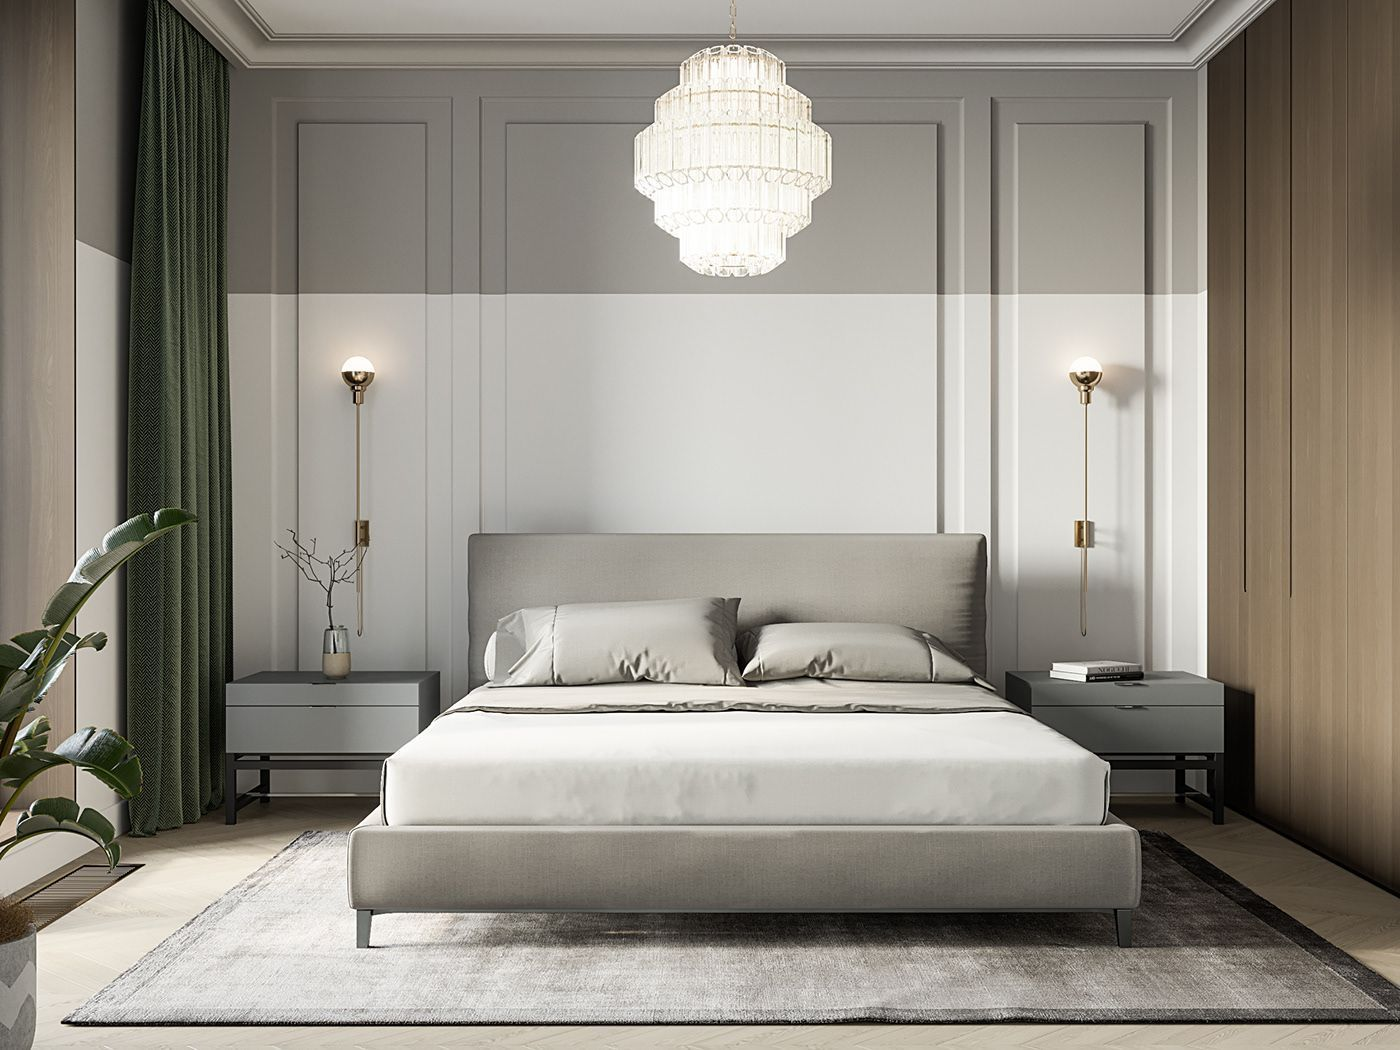 Discover The Best Lighting Selection For Bedroom Decor Inspiration For Your Next Interior Design Project He In 2020 Luxurious Bedrooms Classic Bedroom Bedroom Interior